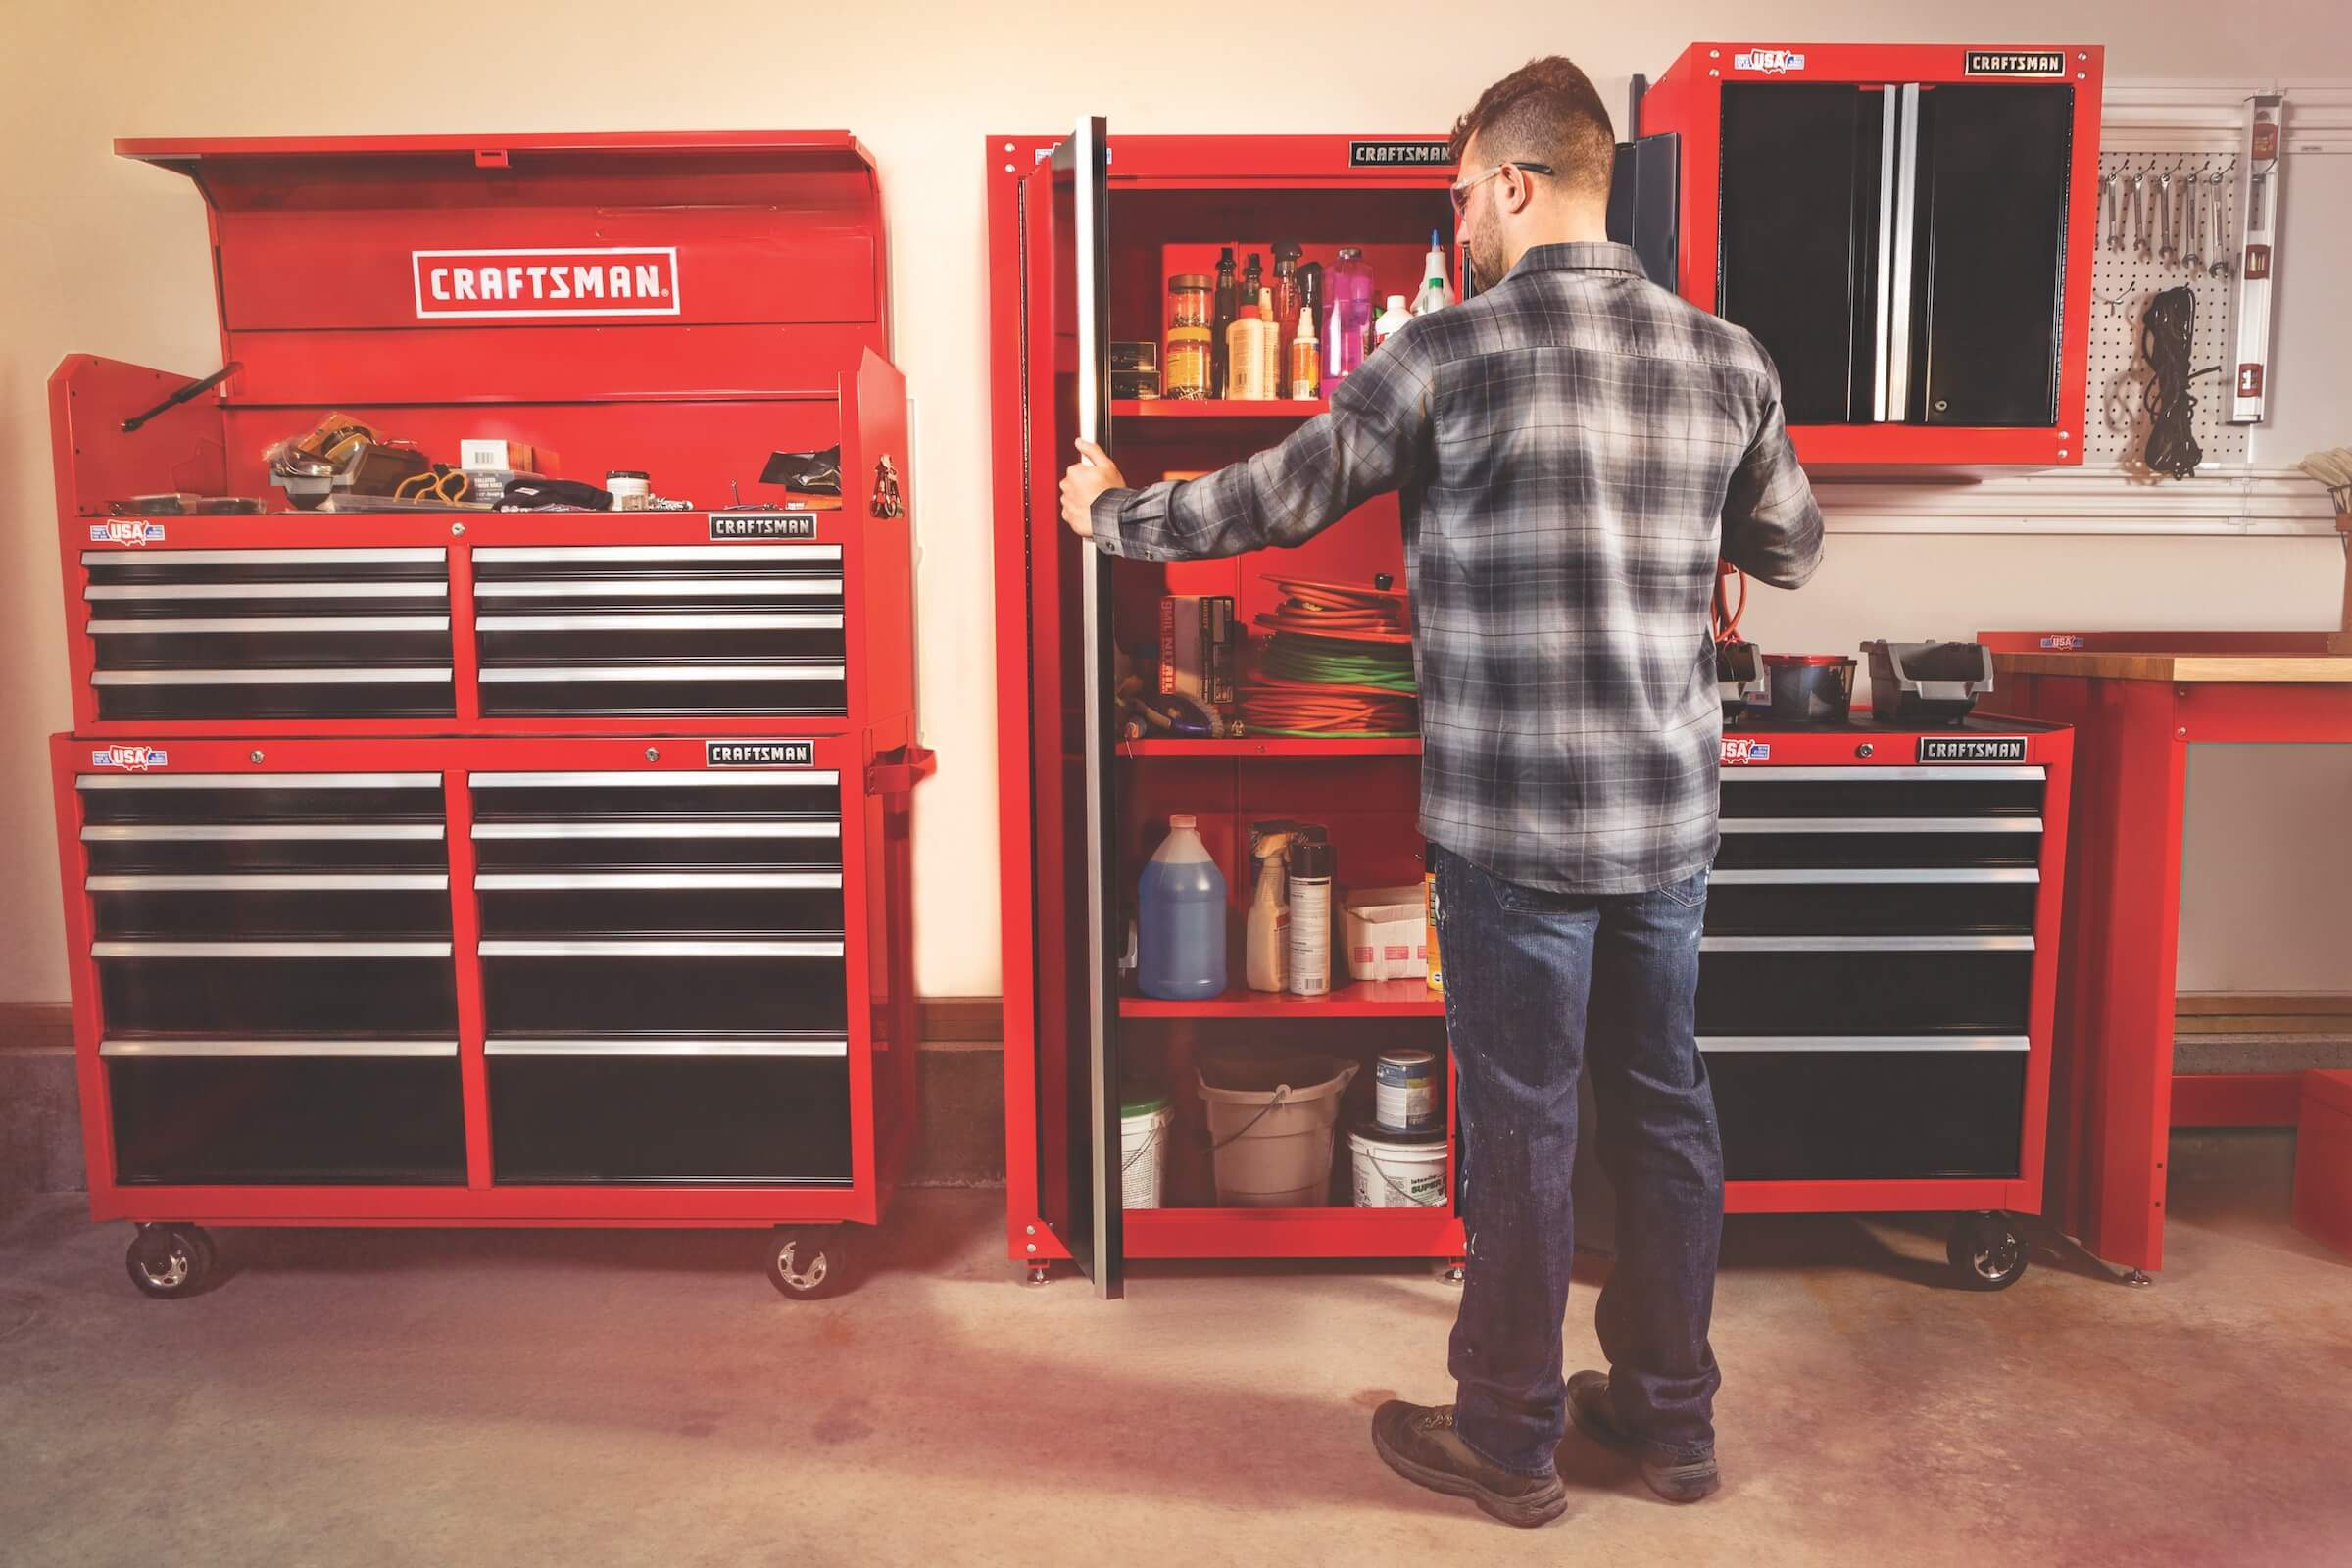 Stanley Black Amp Decker S Purchase Of Craftsman From Sears May Have No True Winners The Motley Fool